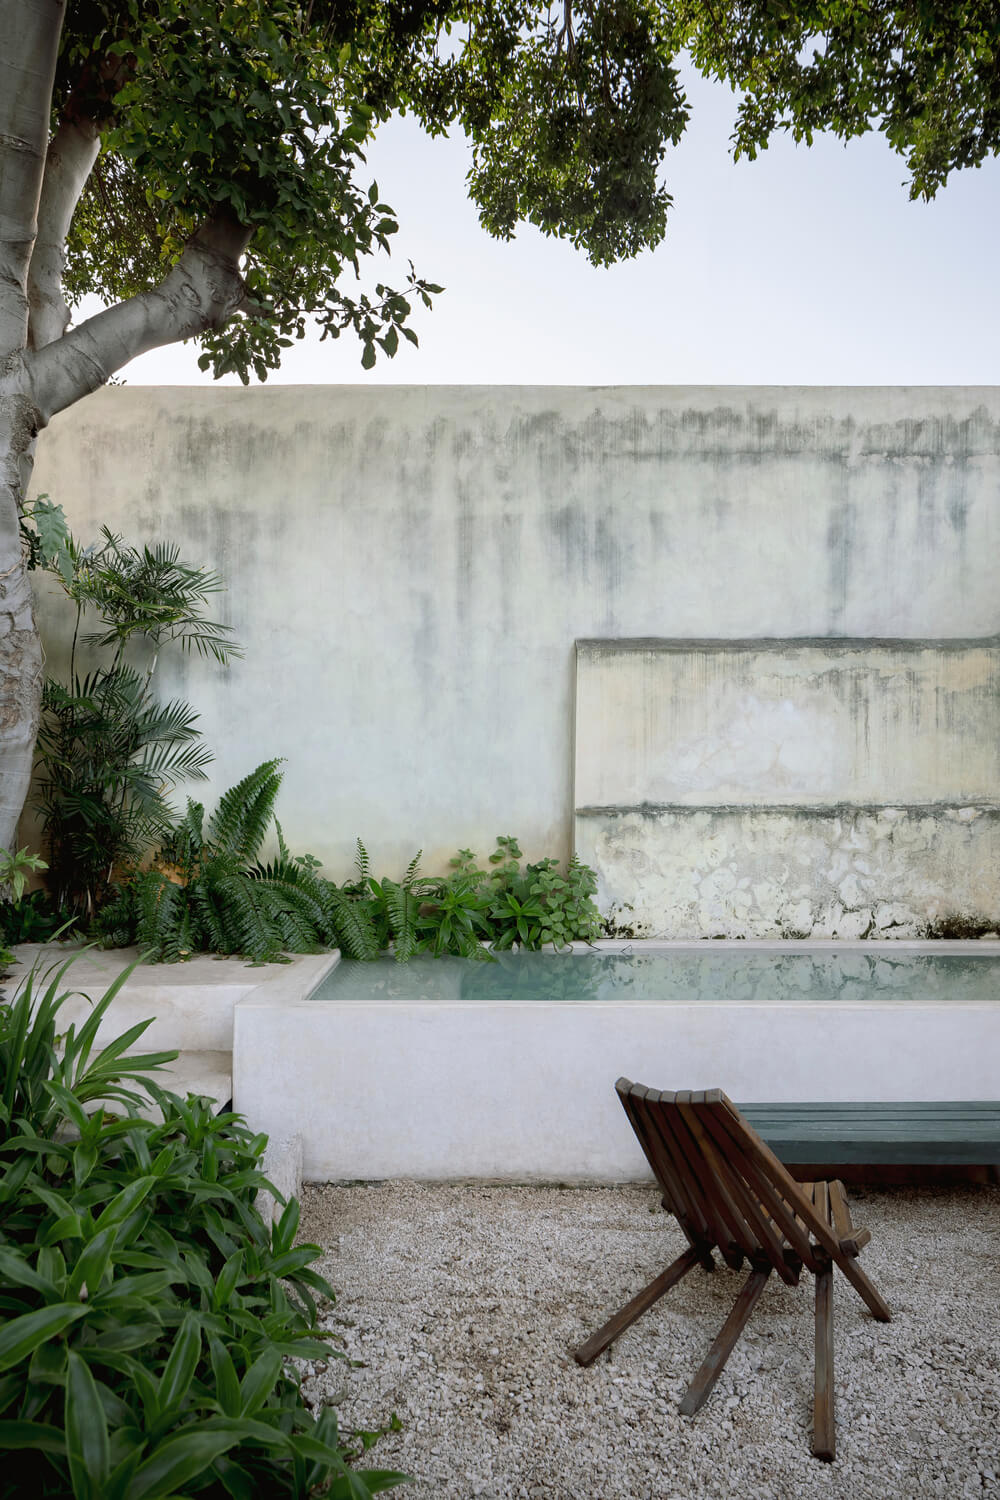 The backyard pool is placed by the tall concrete wall adorned by the landscaping of shrubs and tree.